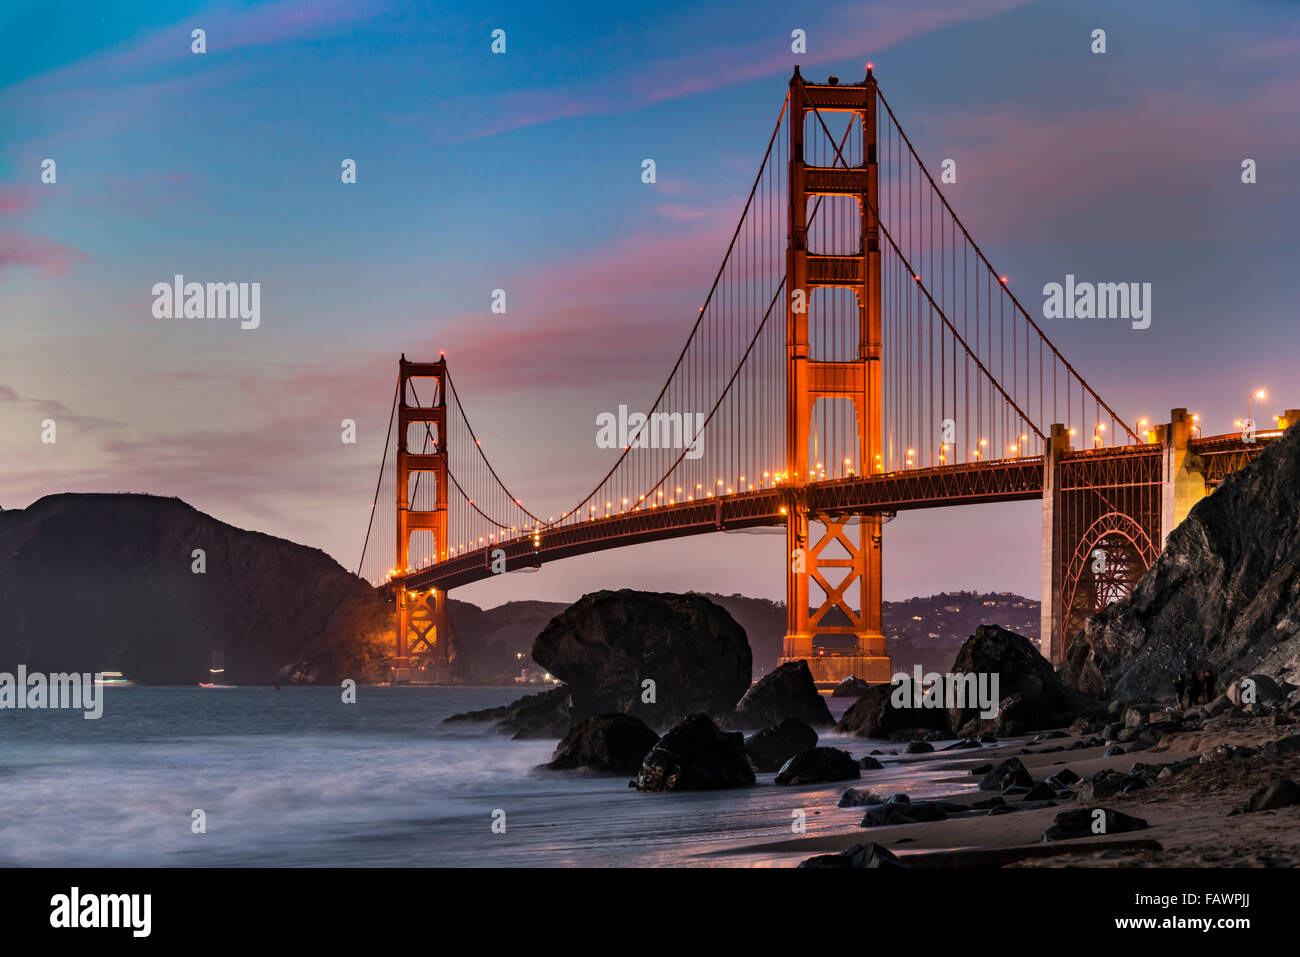 Golden Gate Bridge, Marshall's beach, night, rocky coast, San Francisco, USA - Stock Image